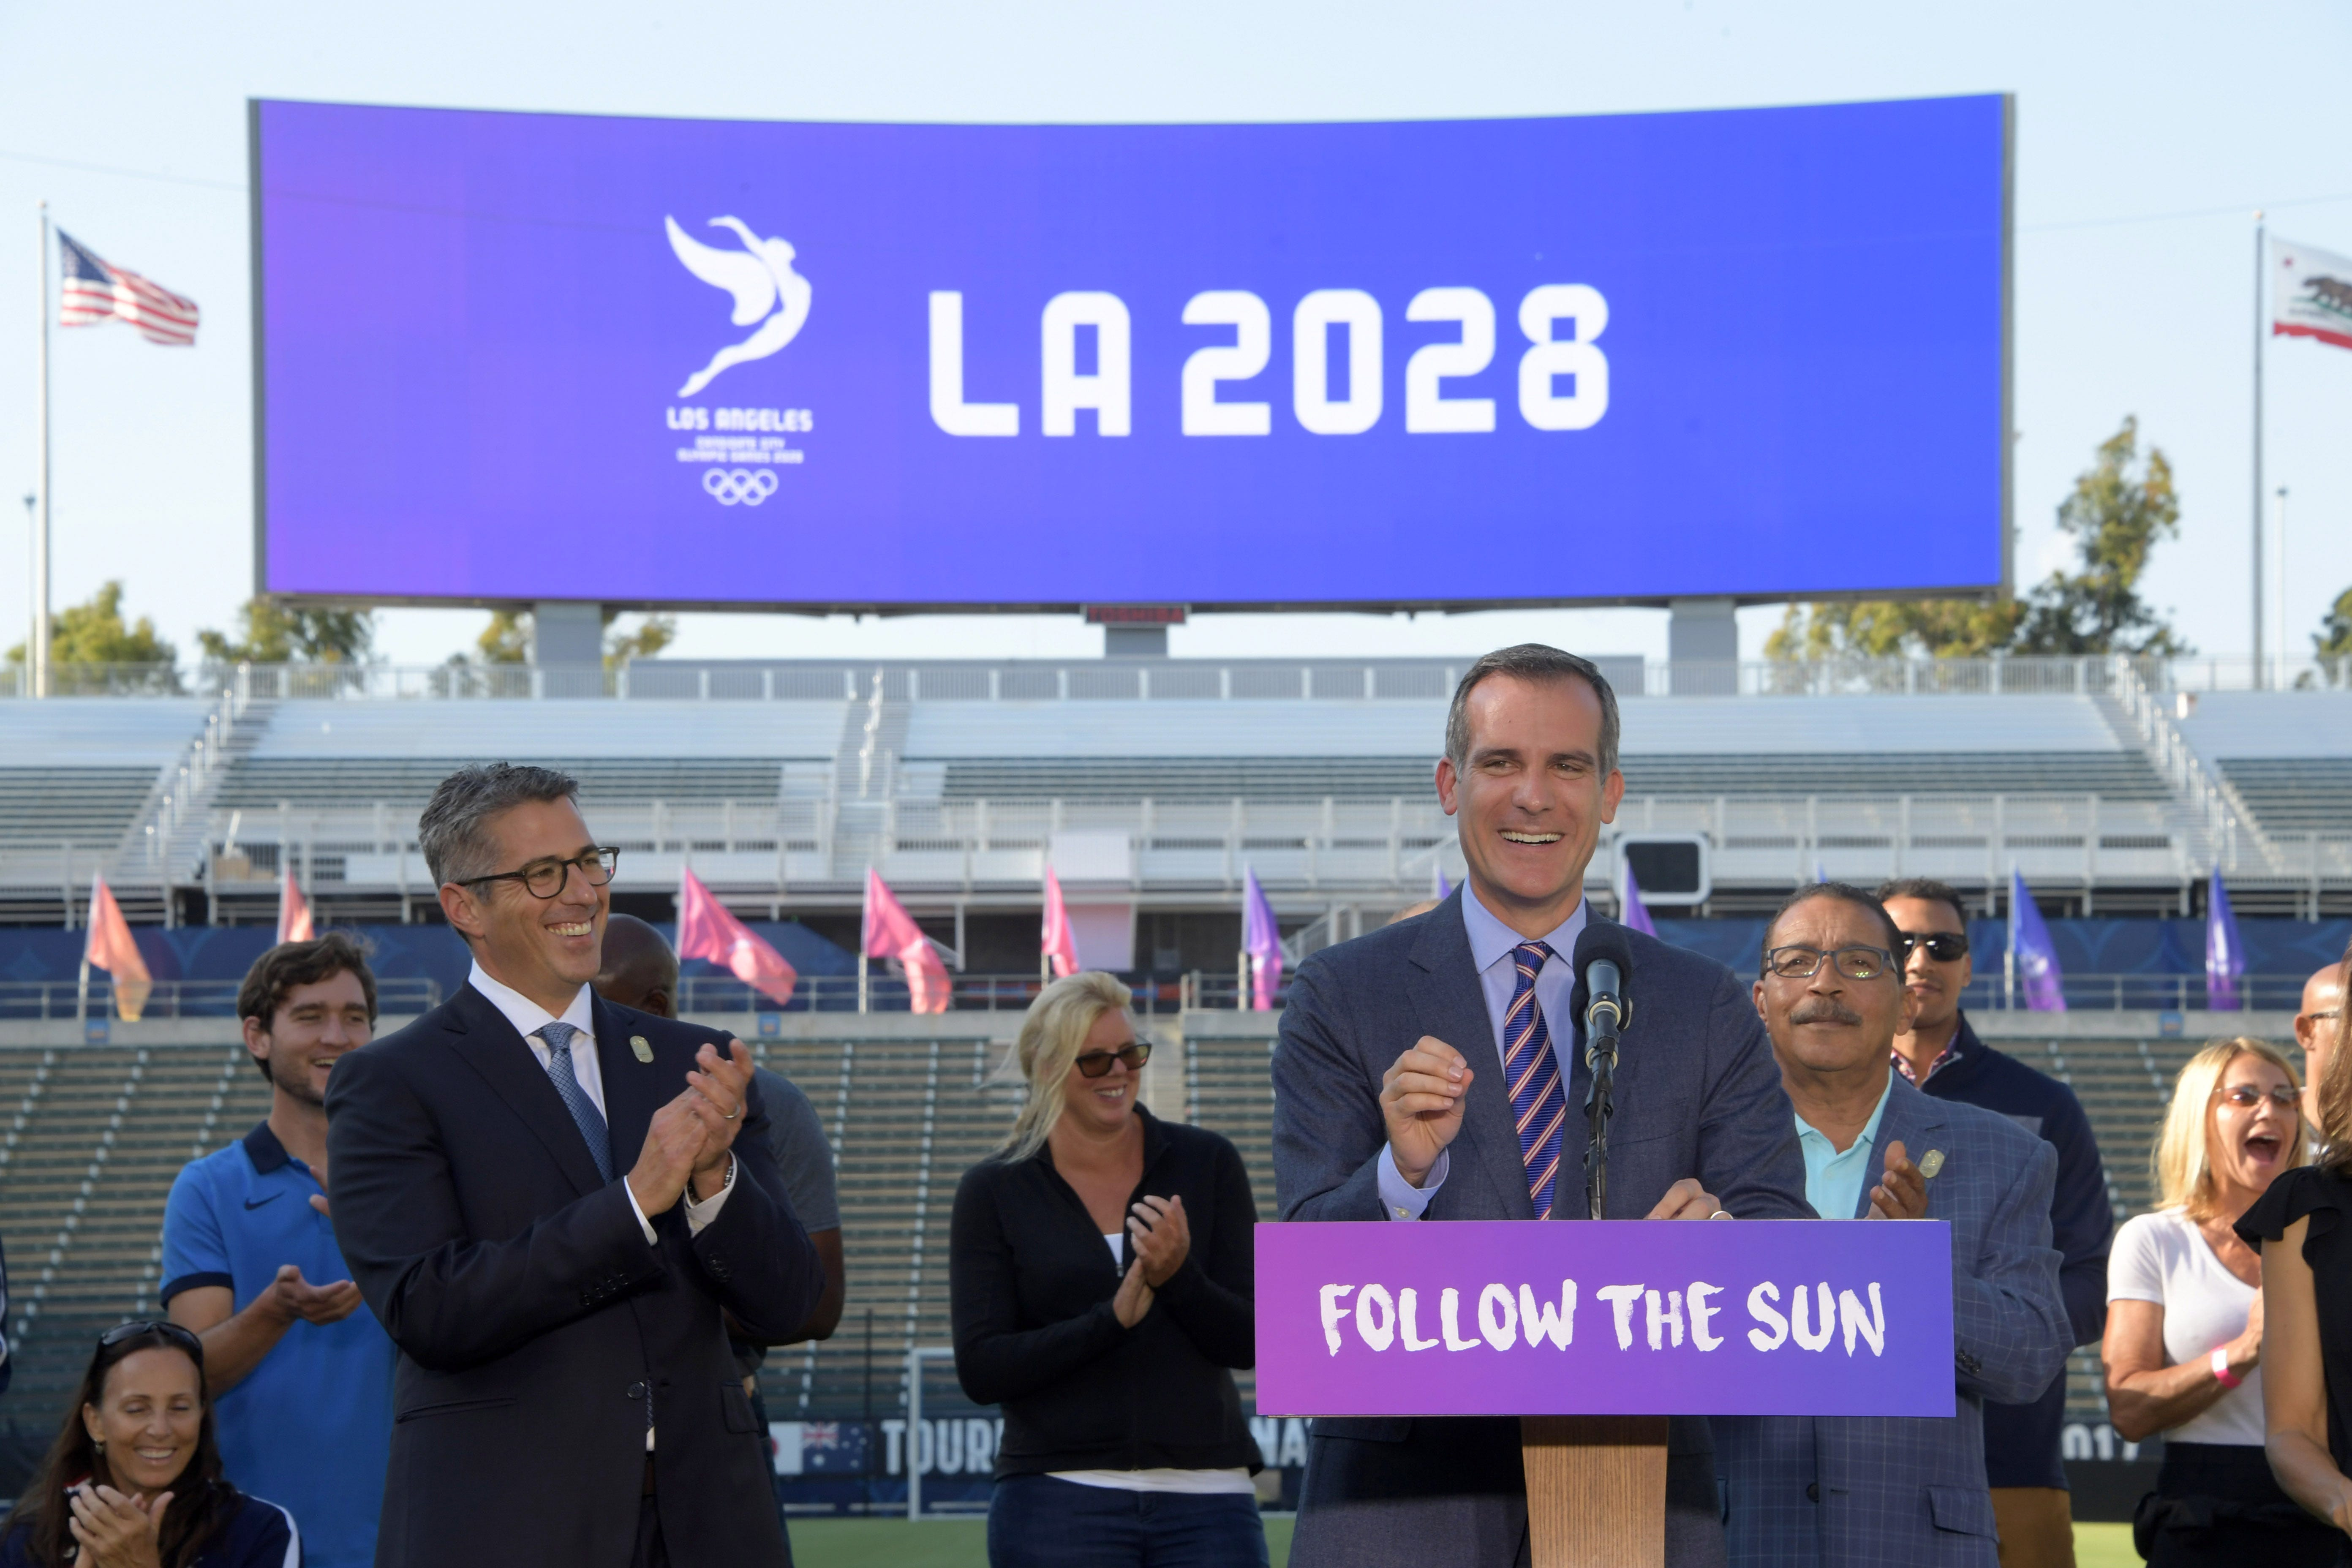 636371373051725123-USP-OLYMPICS-LOS-ANGELES-2028-OLYMPIC-AND-PARALYM-92758751 L.A. mayor: City to get more than $2 billion from IOC for hosting 2028 Games